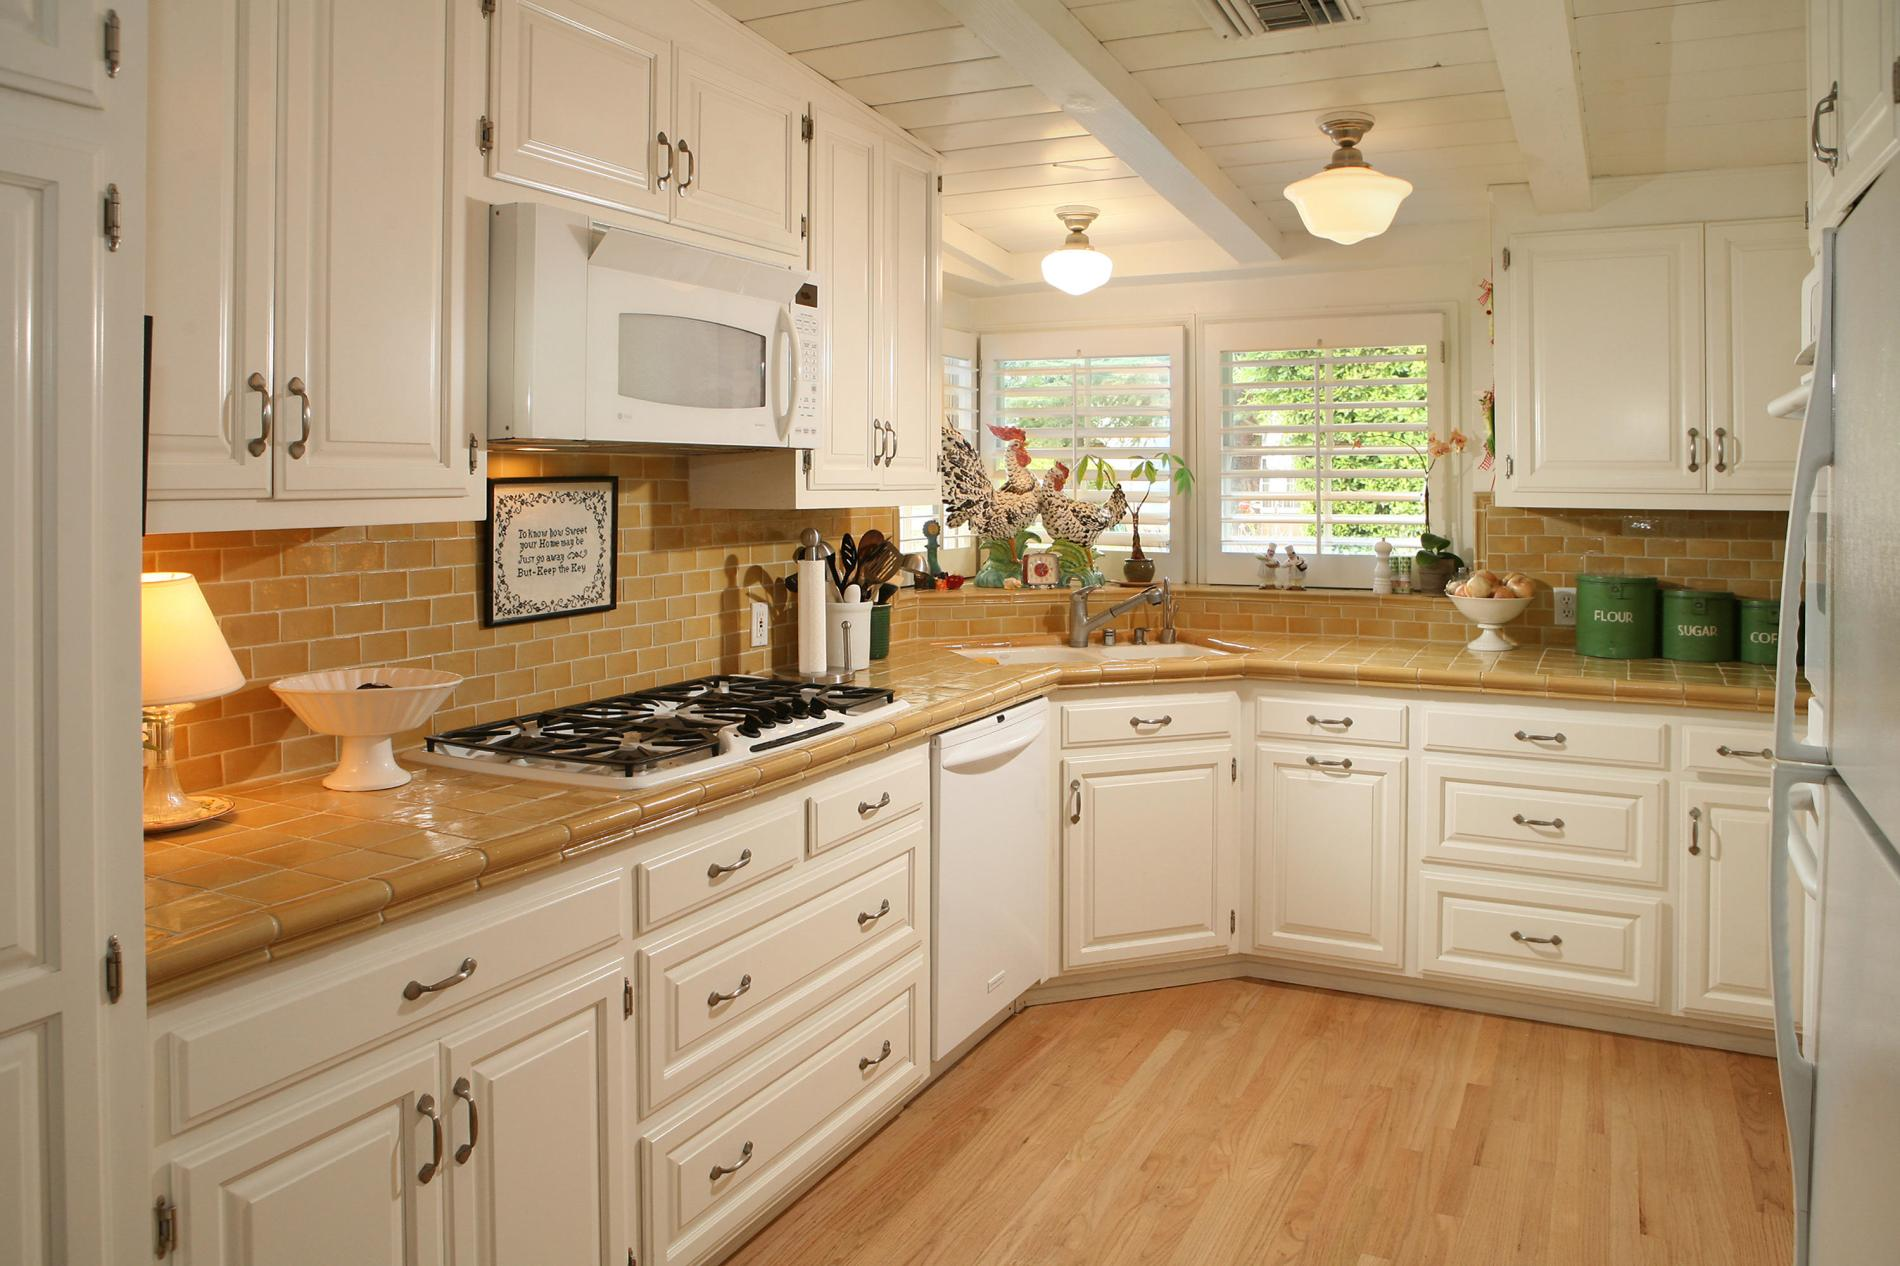 Image of: kitchen tile ideas on a budget